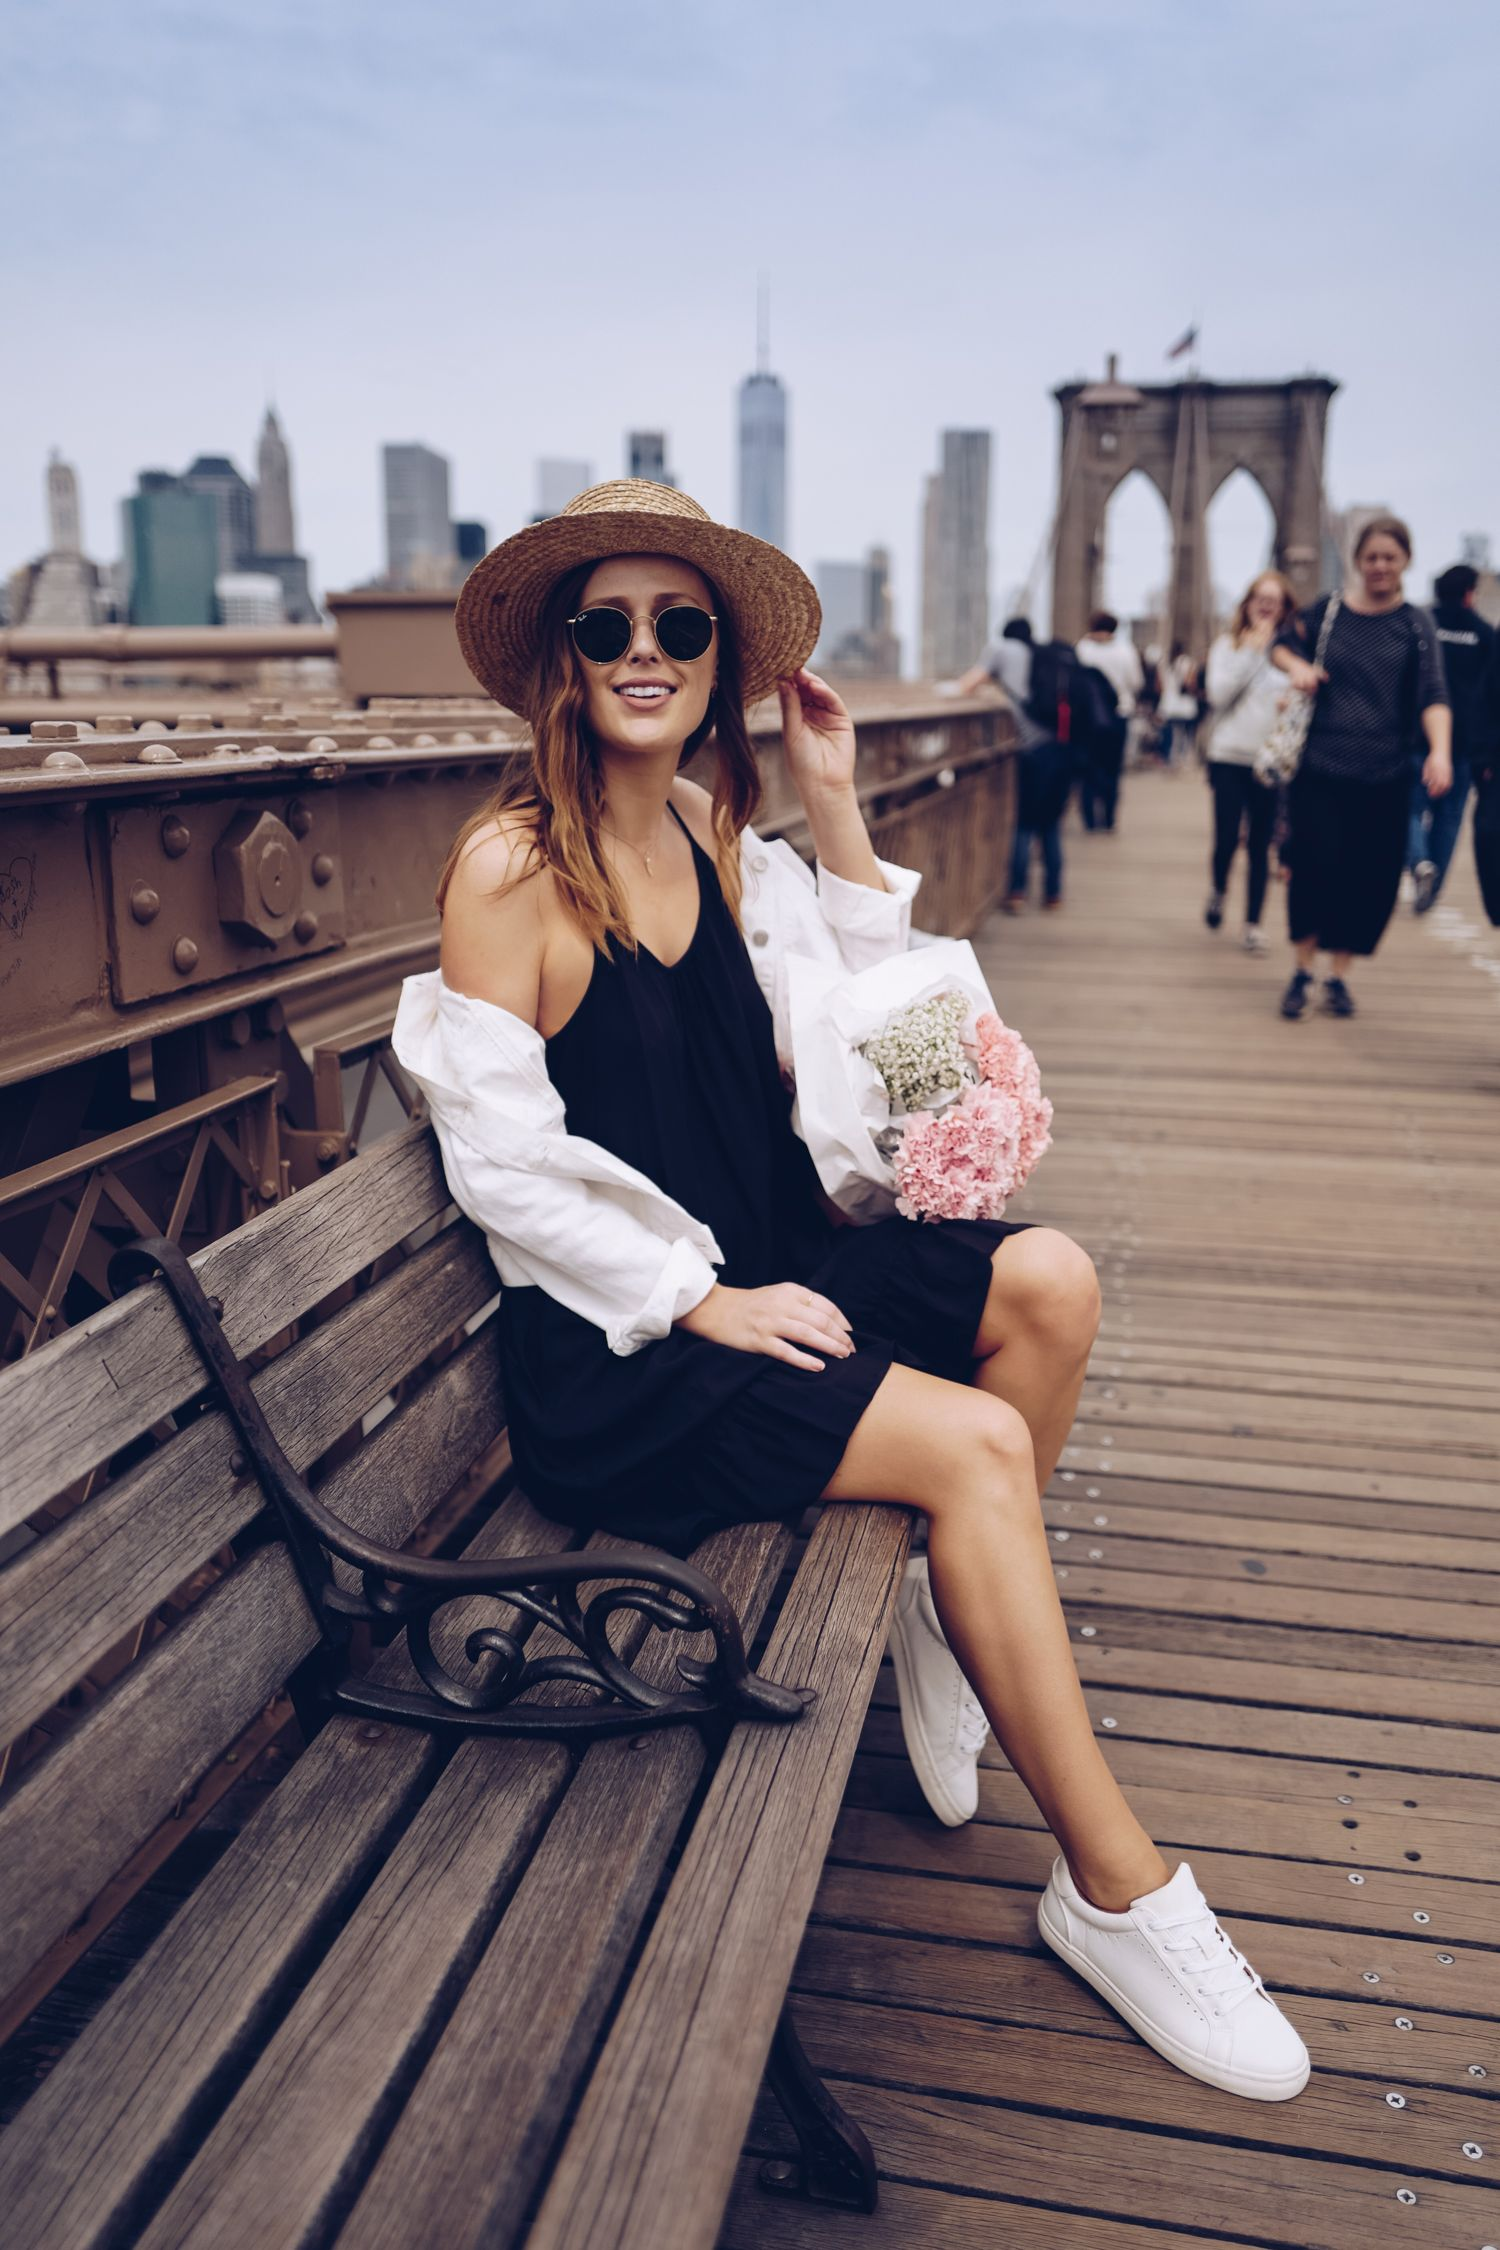 STREET STYLE: Casual Spring travel outfit. Boater hat and